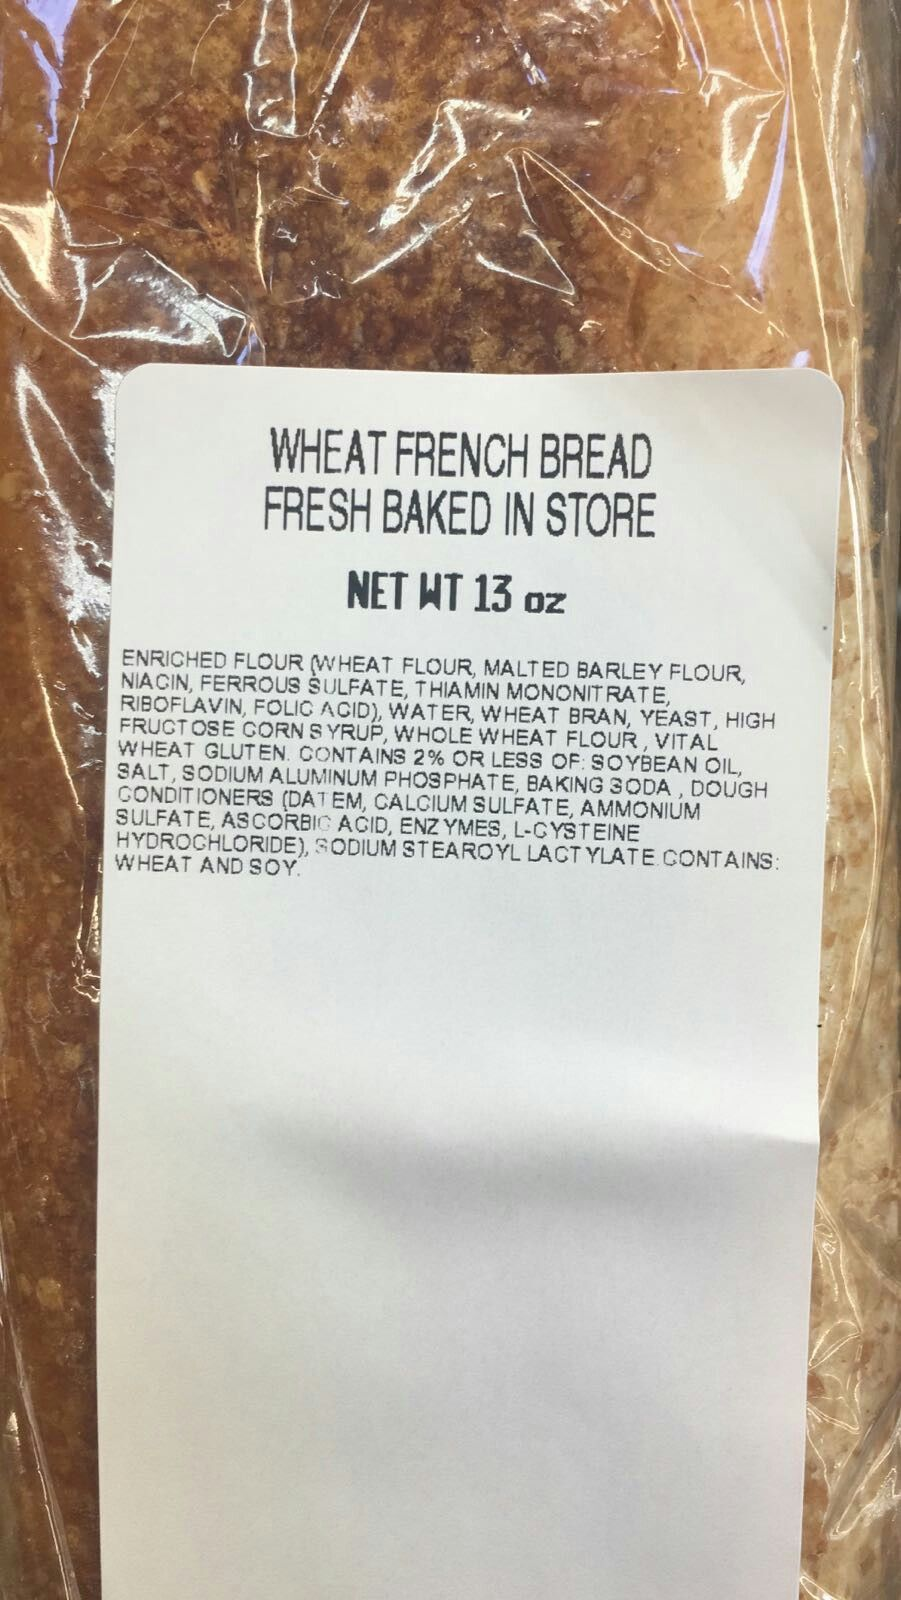 Walmart Bakery Fresh Wheat French Bread Is Vegetarian And Halal Verified On 11 30 2017 I Called The Number On The Pack Barley Flour Malted Barley French Bread